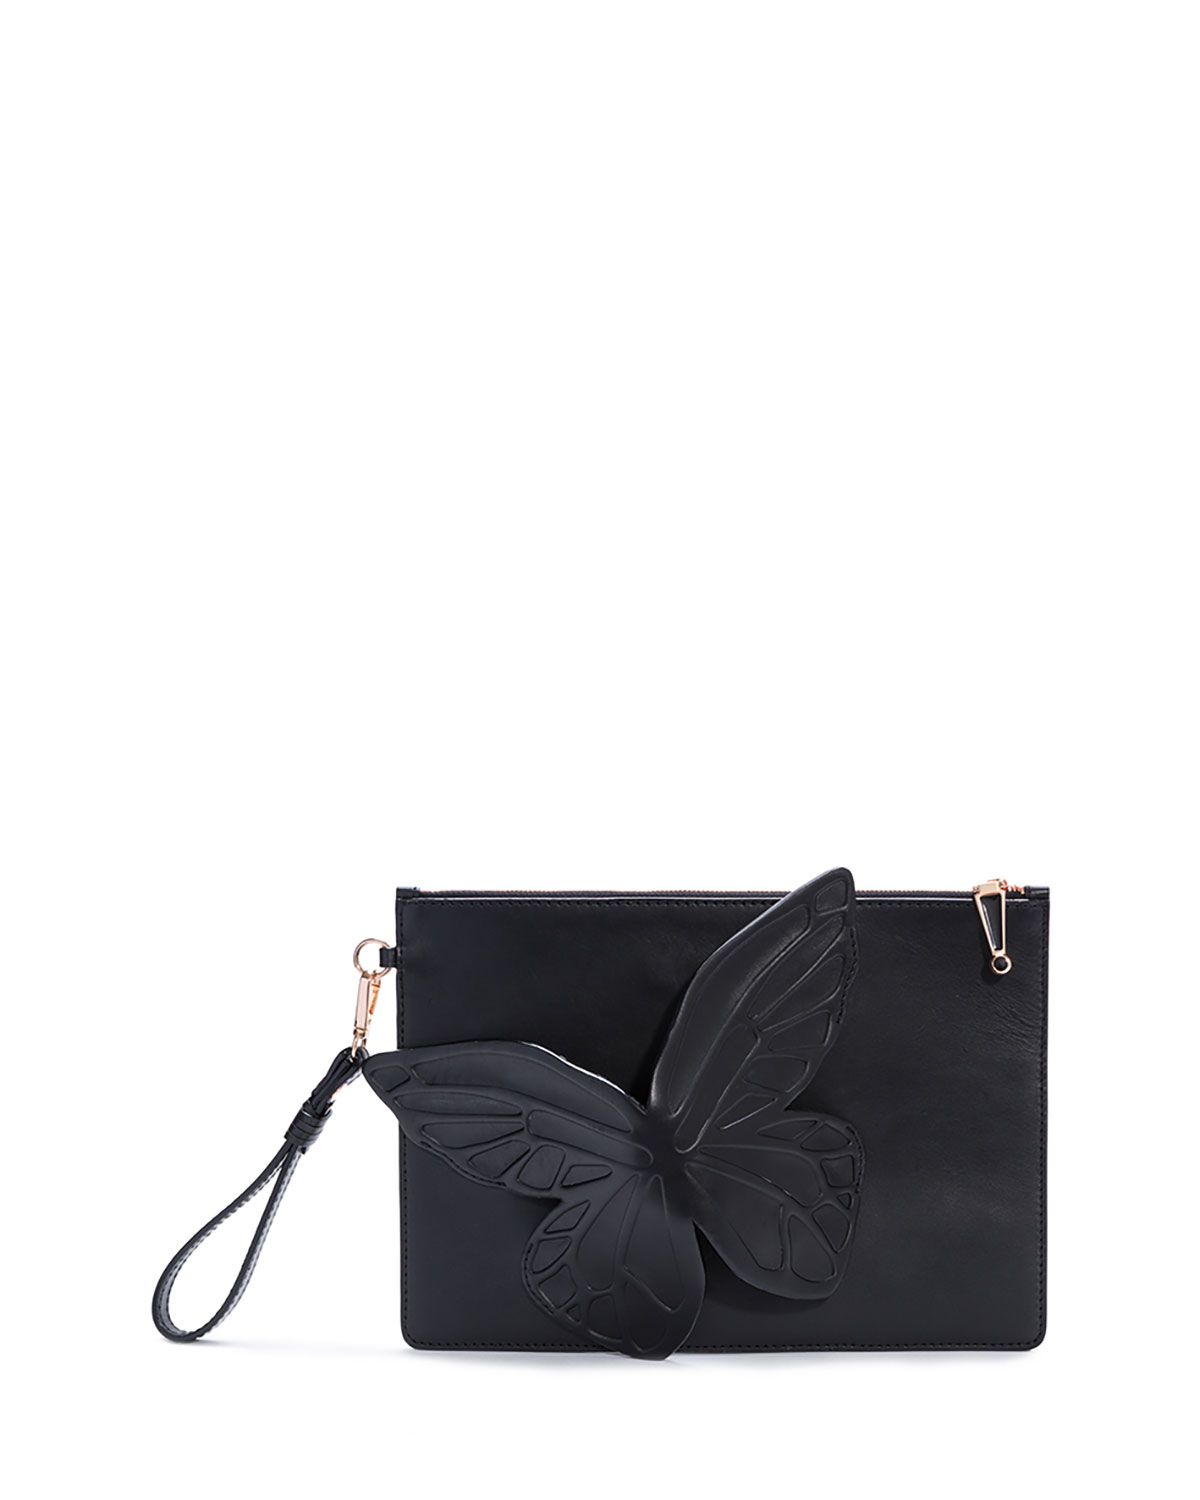 Sophia Cuir Webster Flossy Sac Photo Papillon Authentique À Vendre Acheter Pas Cher Best-seller Le2i88rou